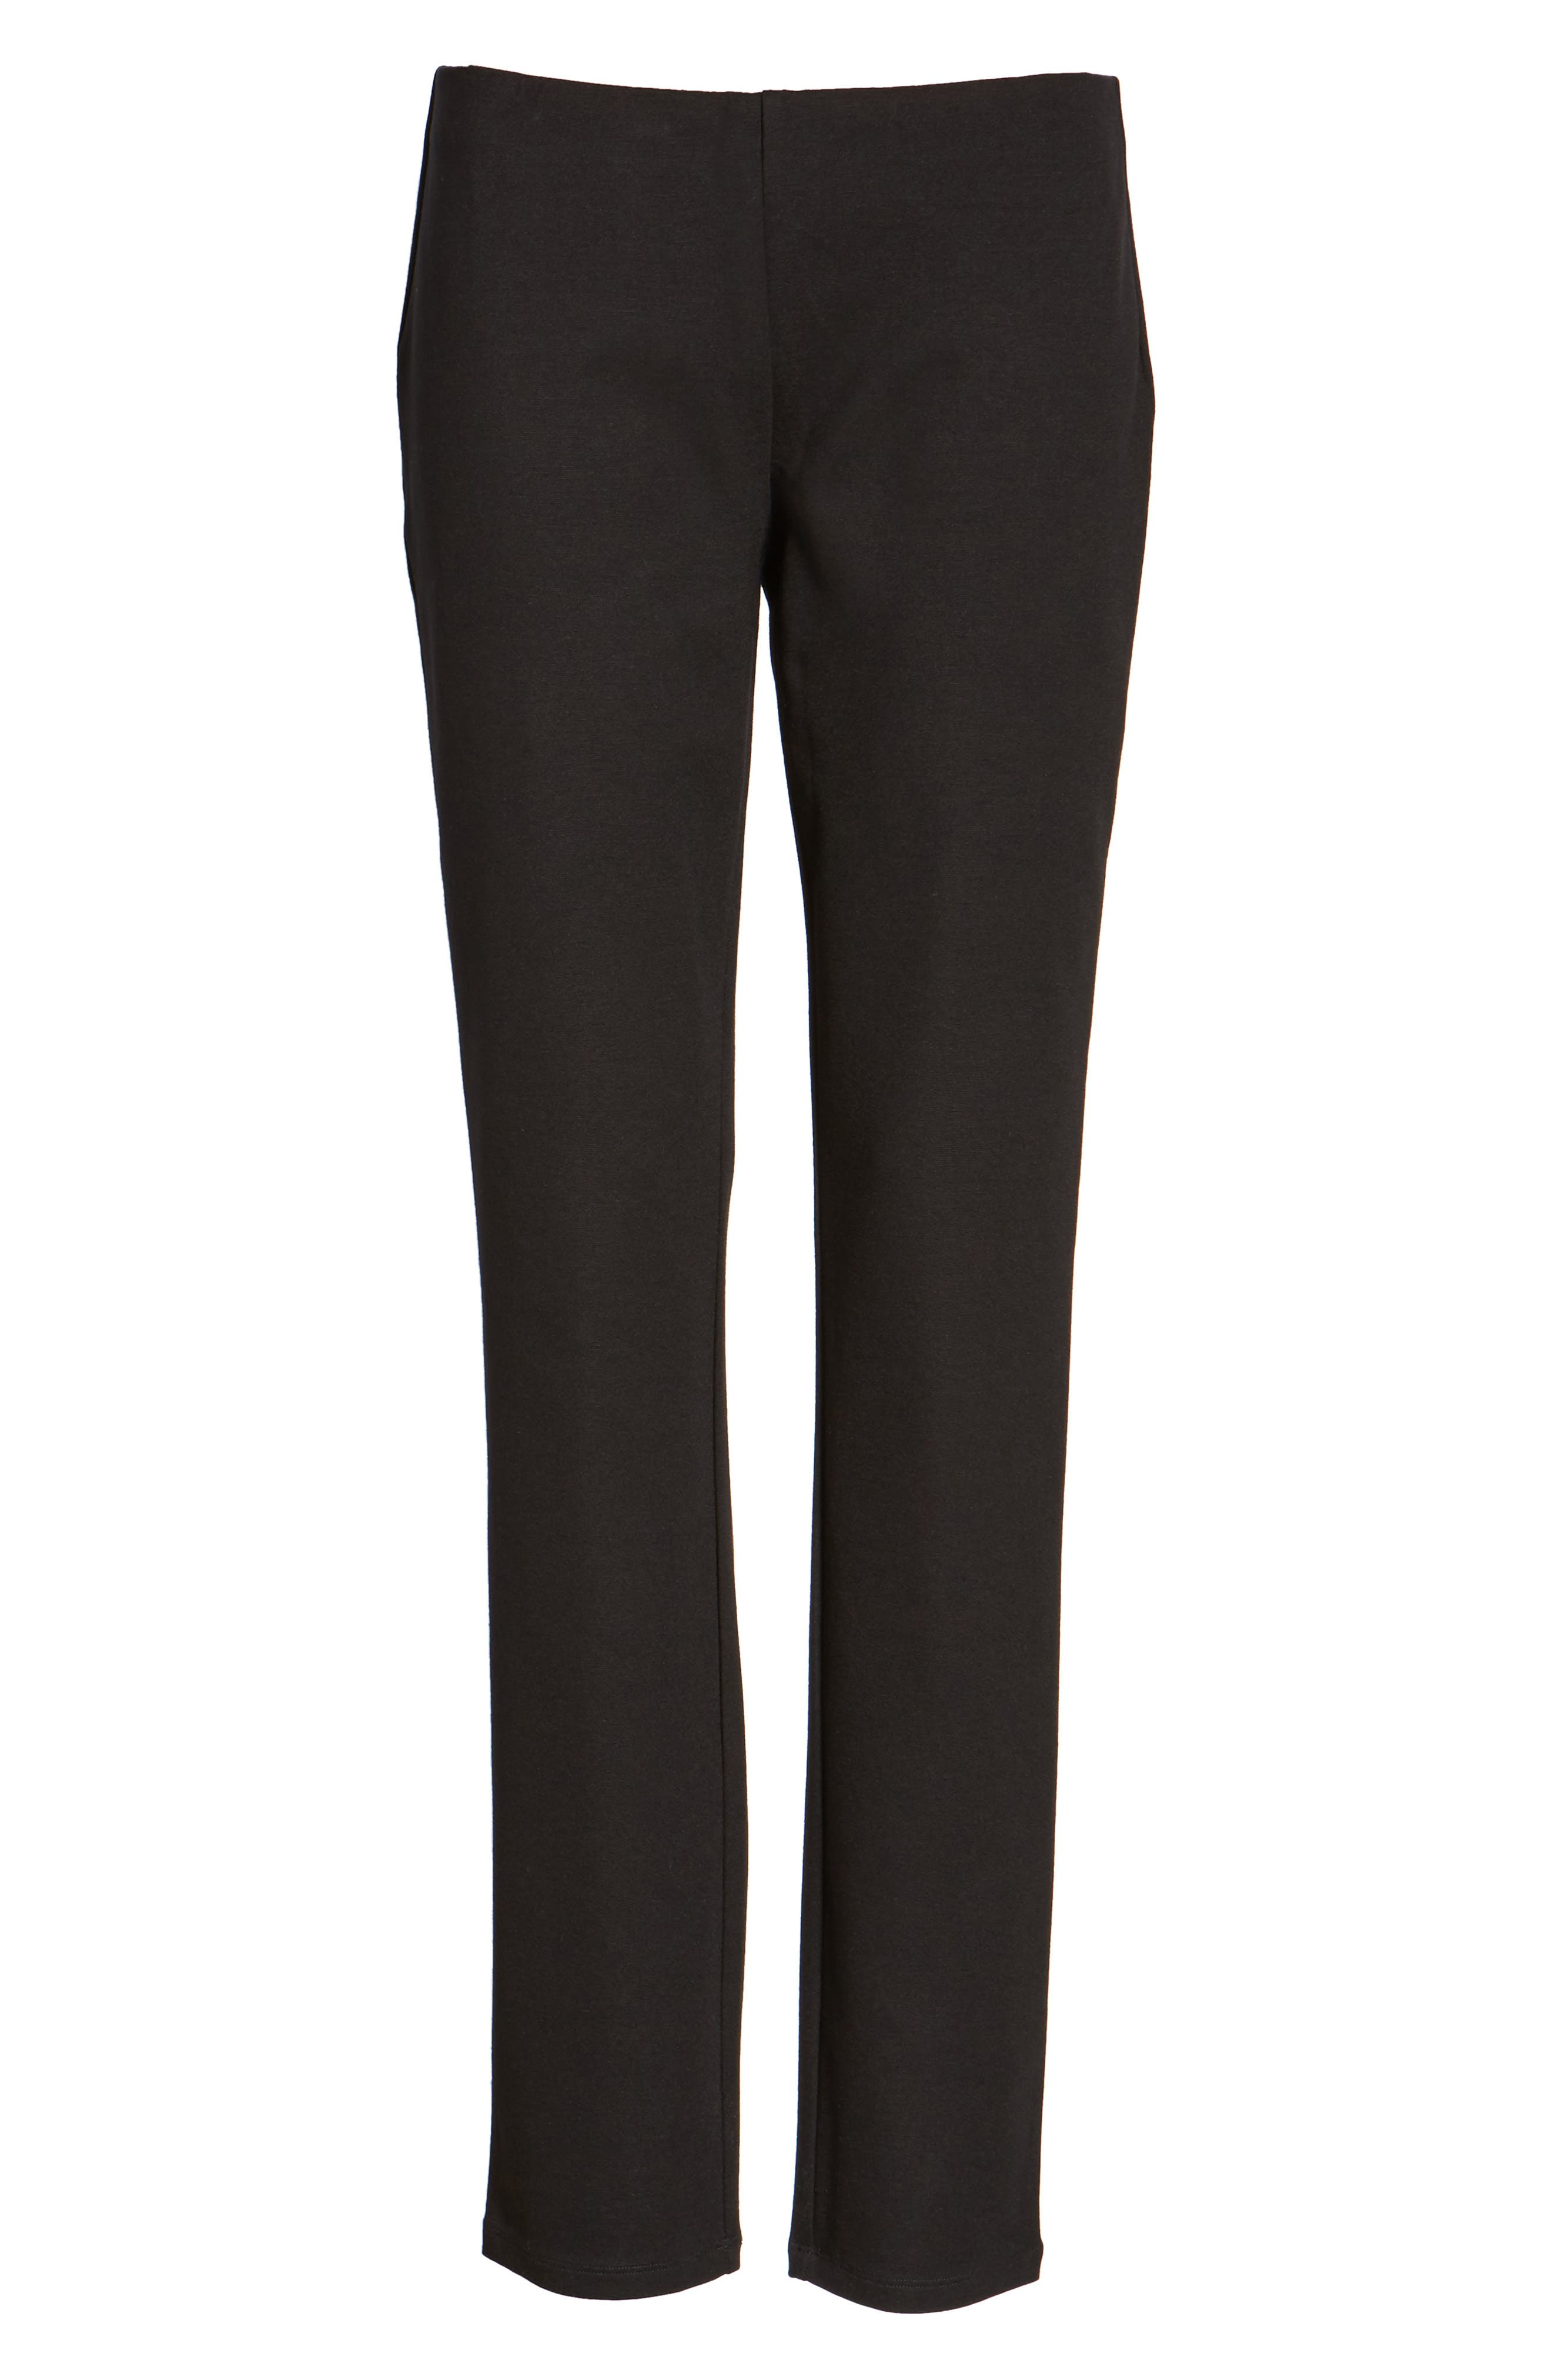 Alternate Image 7  - Eileen Fisher Slim Ponte Knit Pants (Regular & Petite)